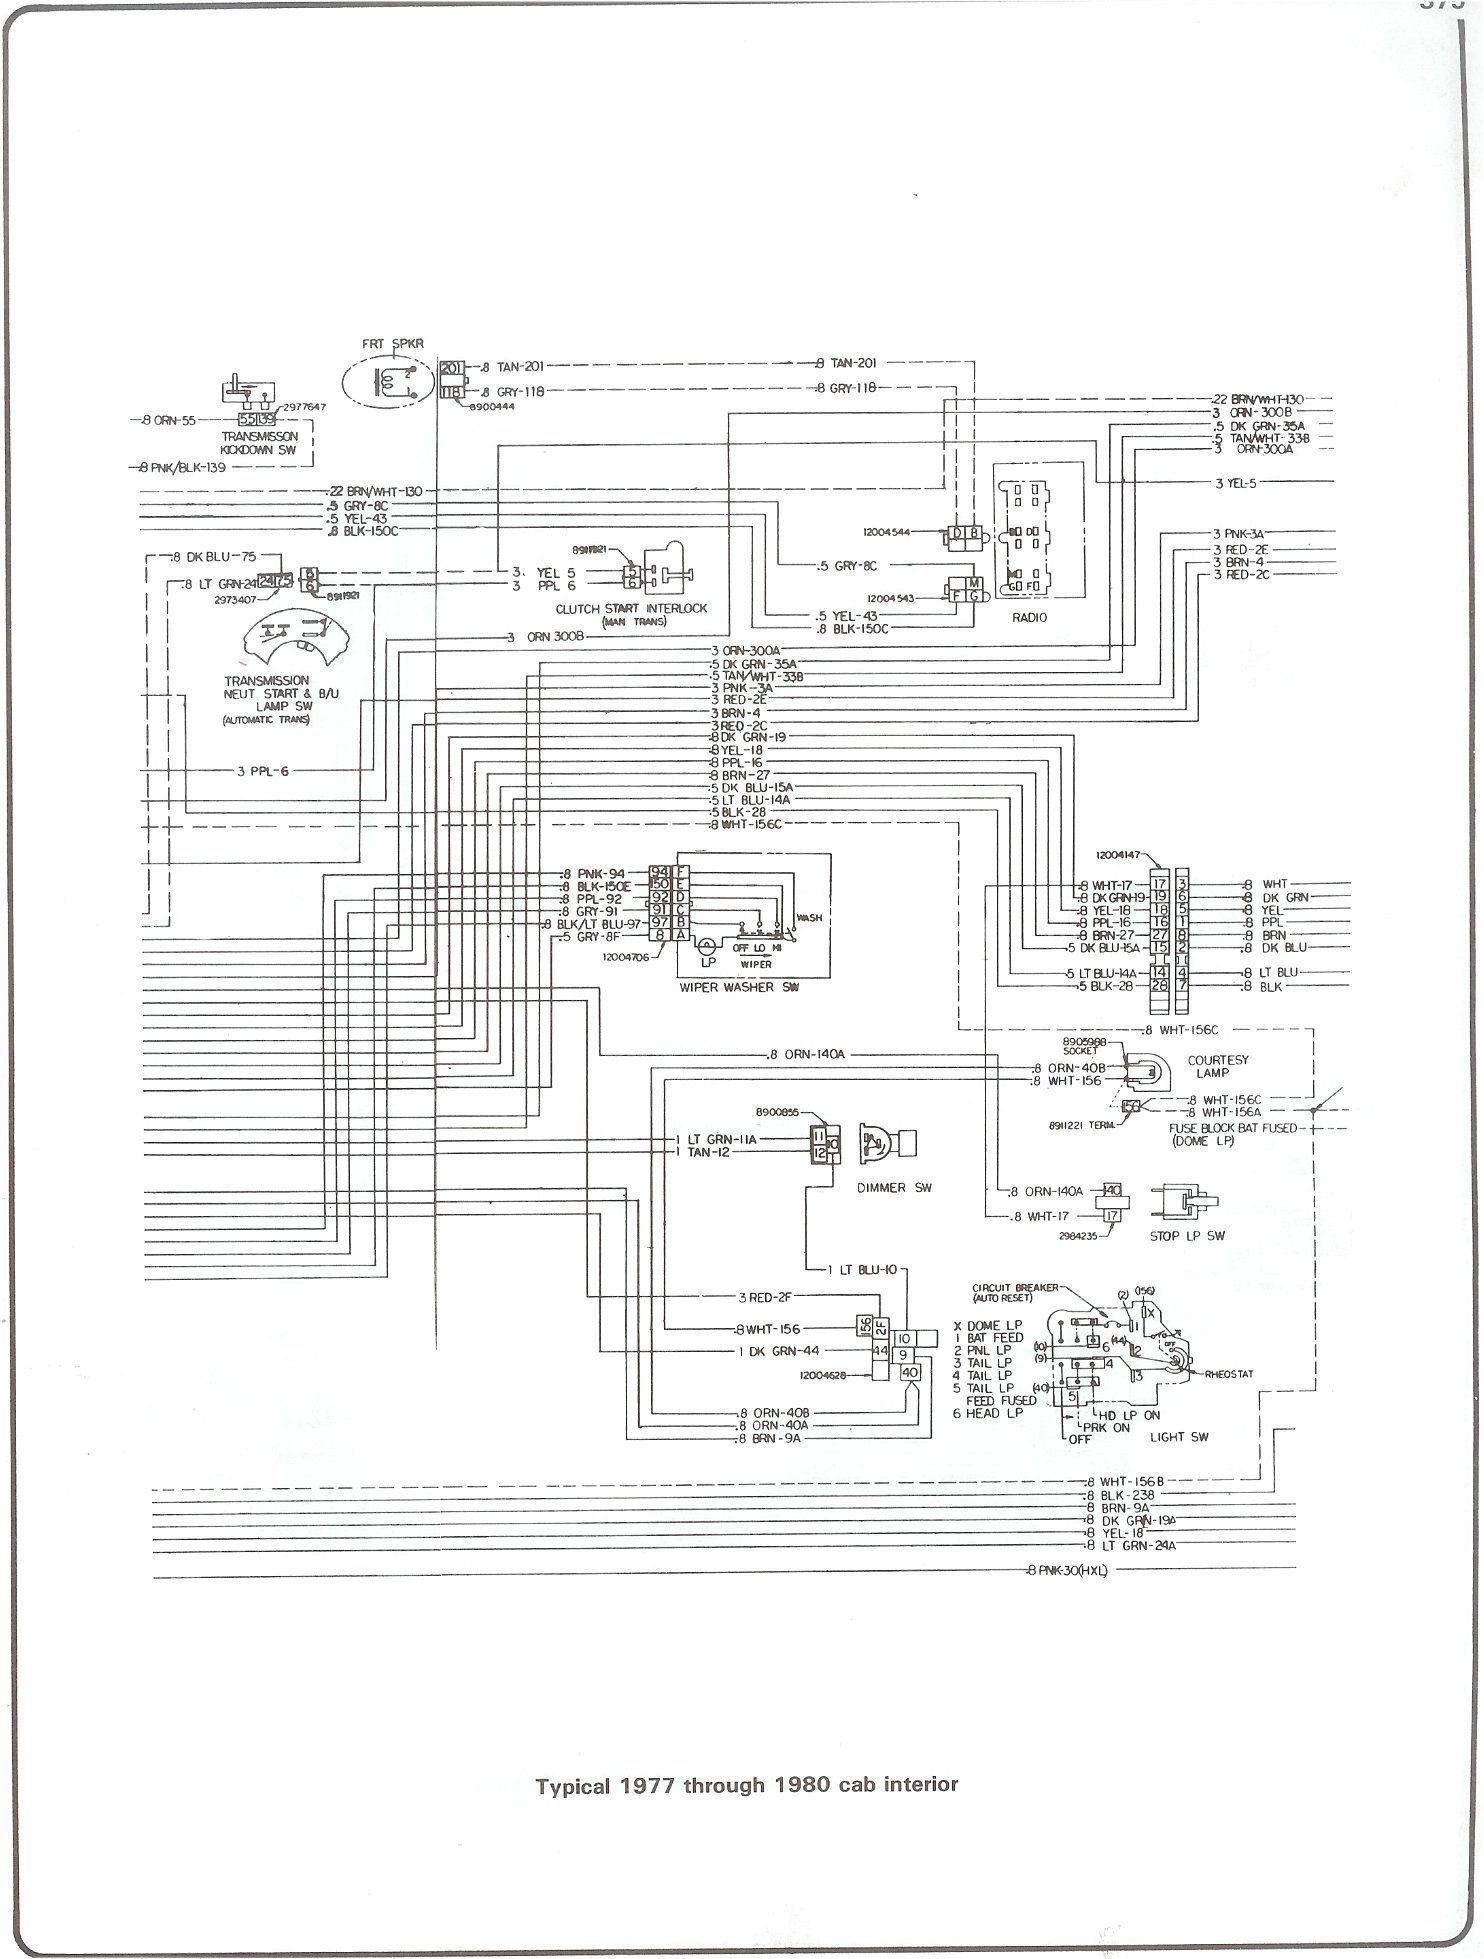 77 80_cab_inter complete 73 87 wiring diagrams 1978 chevy truck wiring diagram at reclaimingppi.co